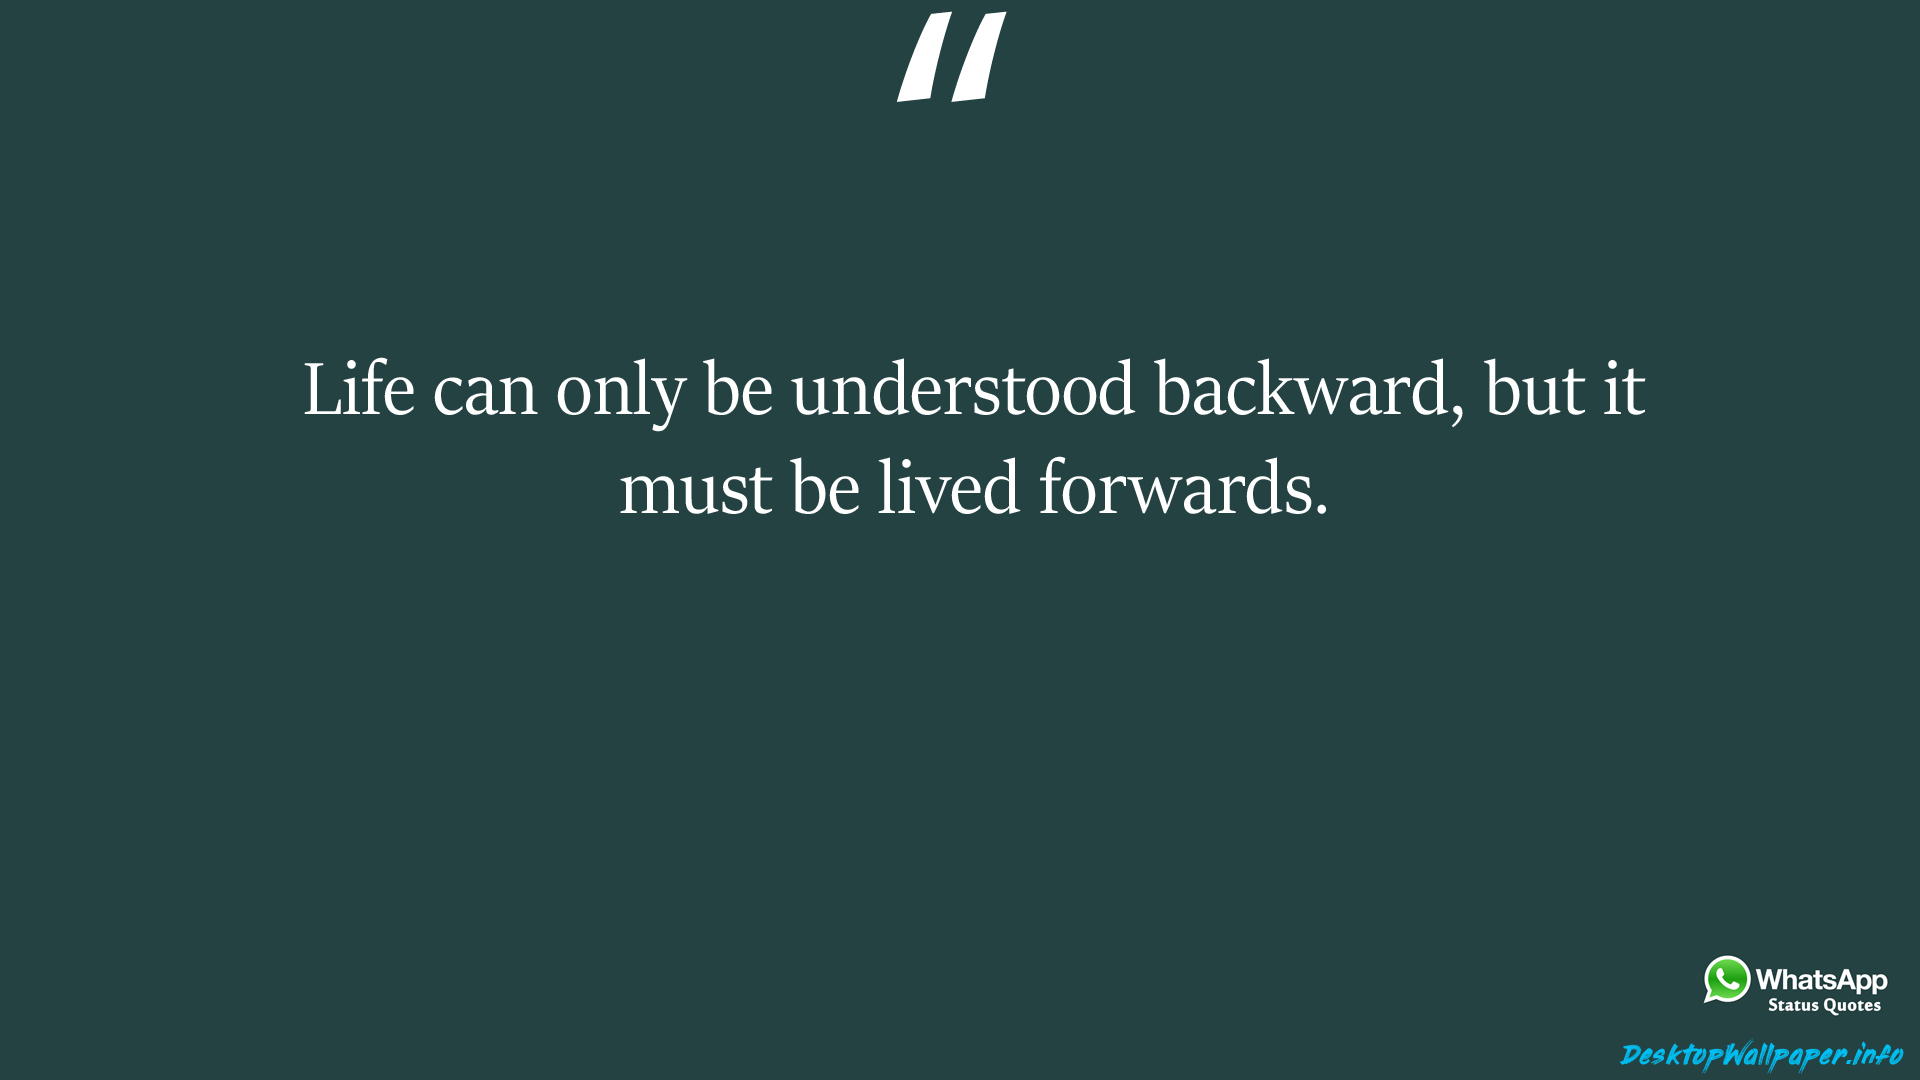 Life can only be understood backward but it must be lived